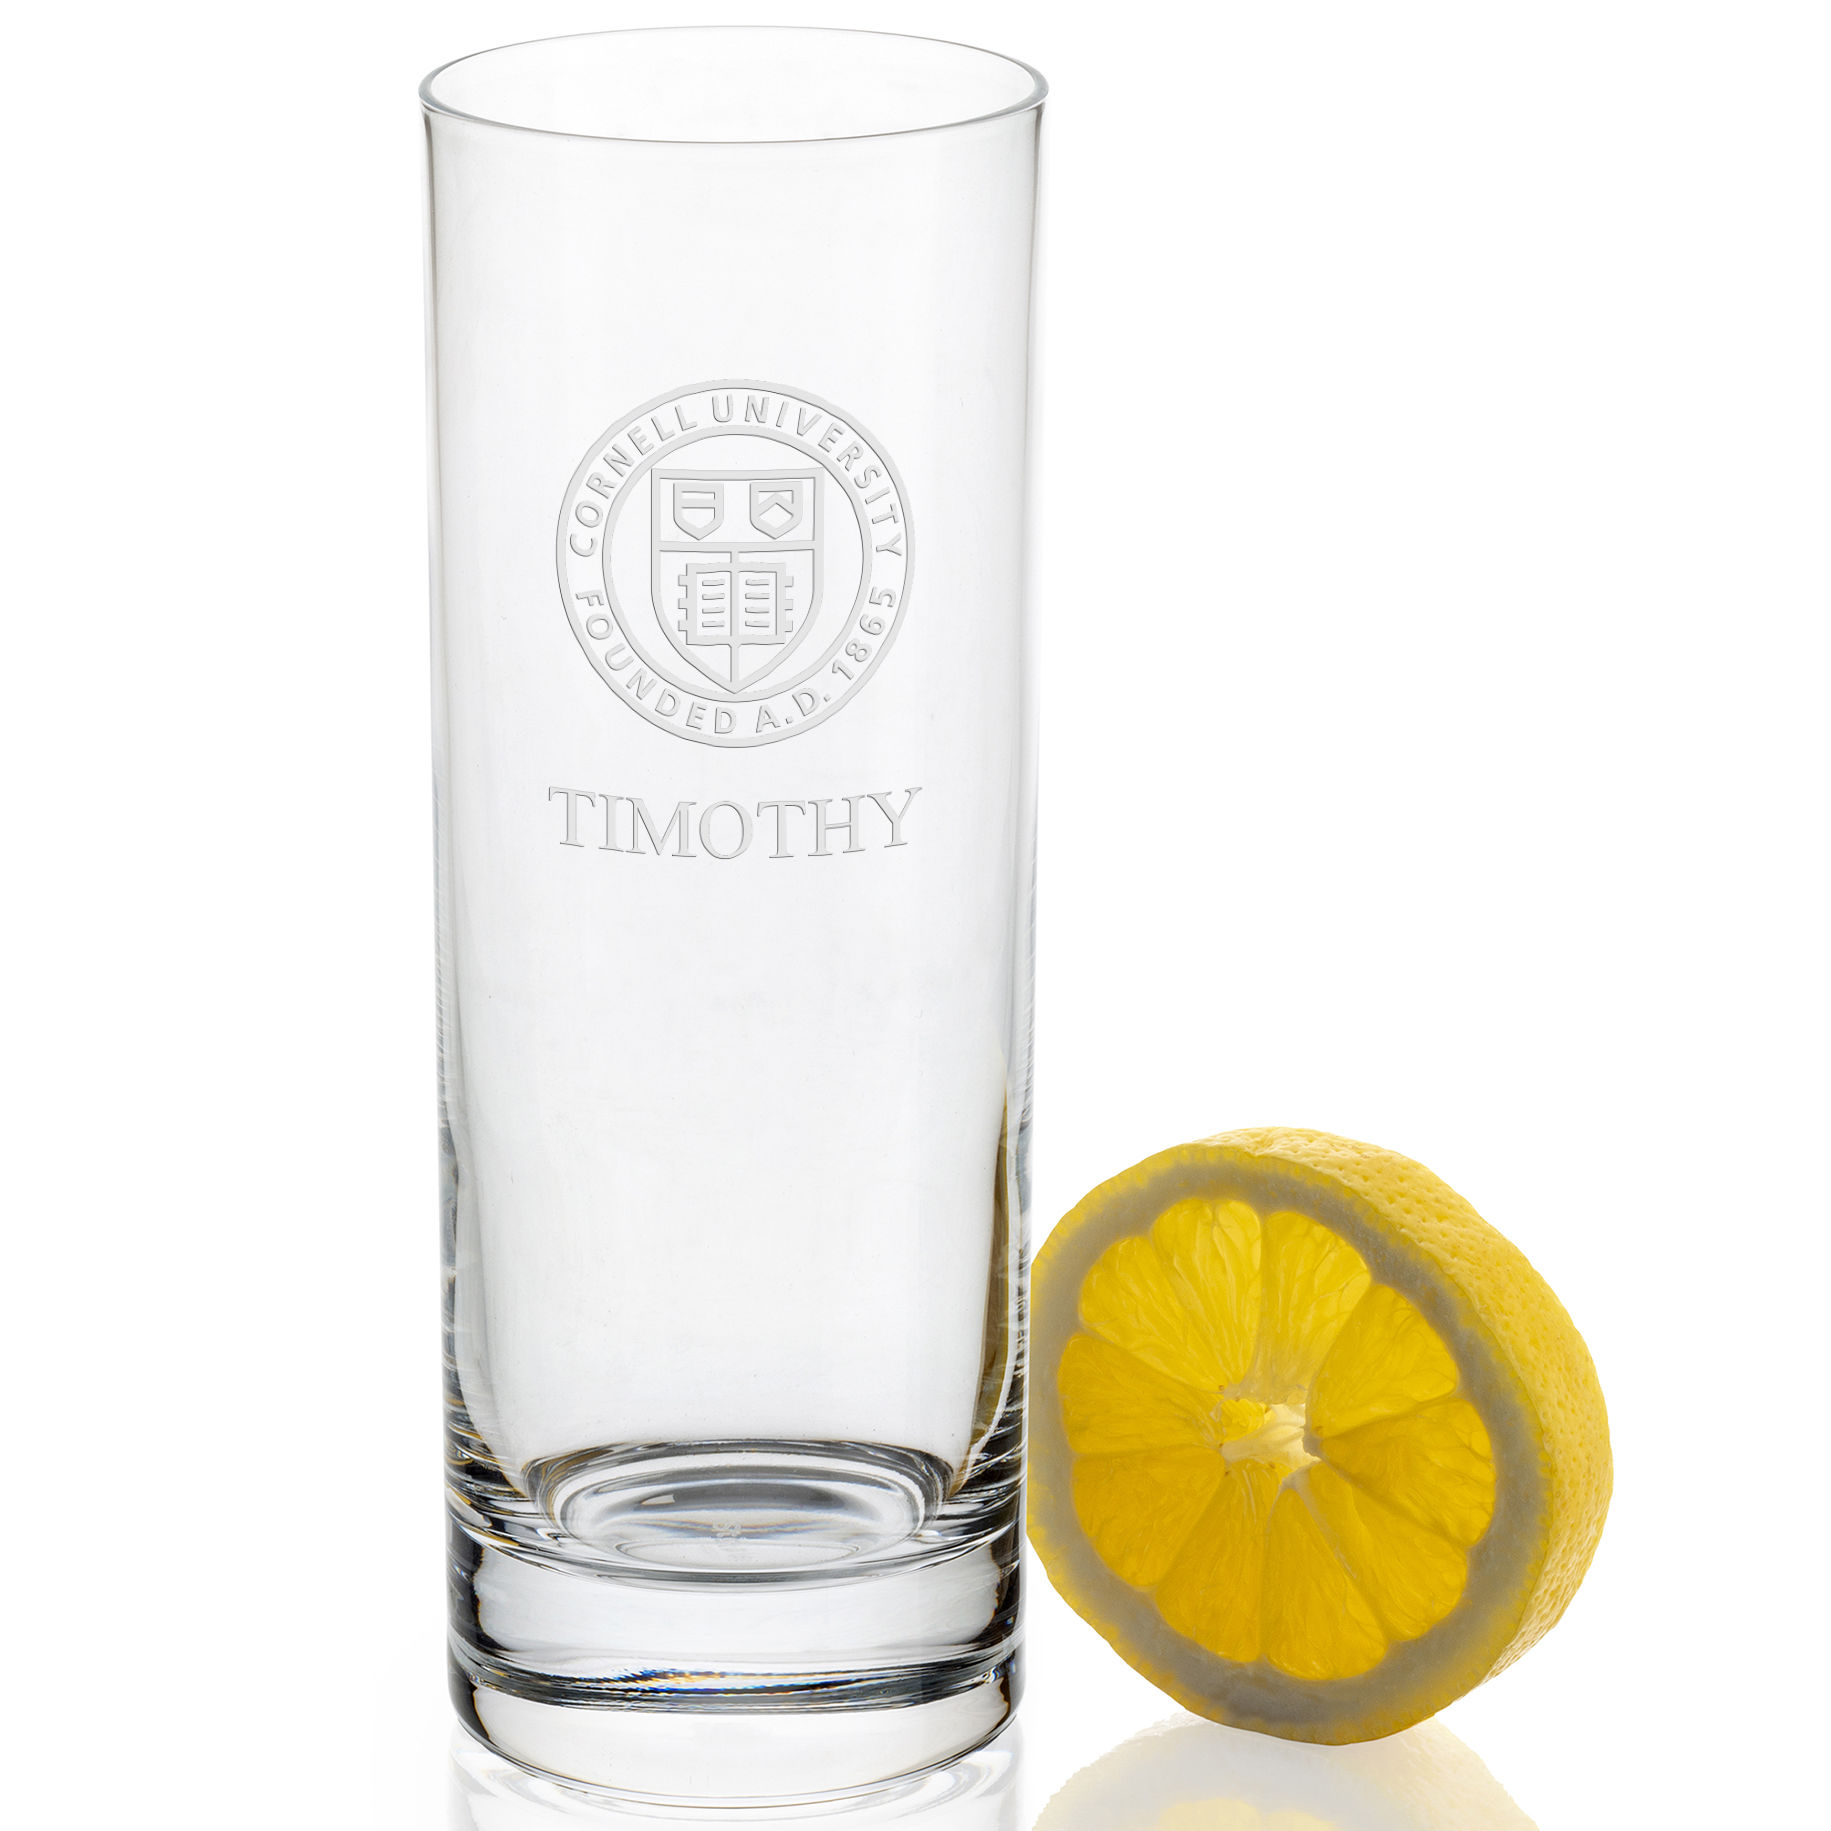 Cornell University Iced Beverage Glasses - Set of 2 - Image 2